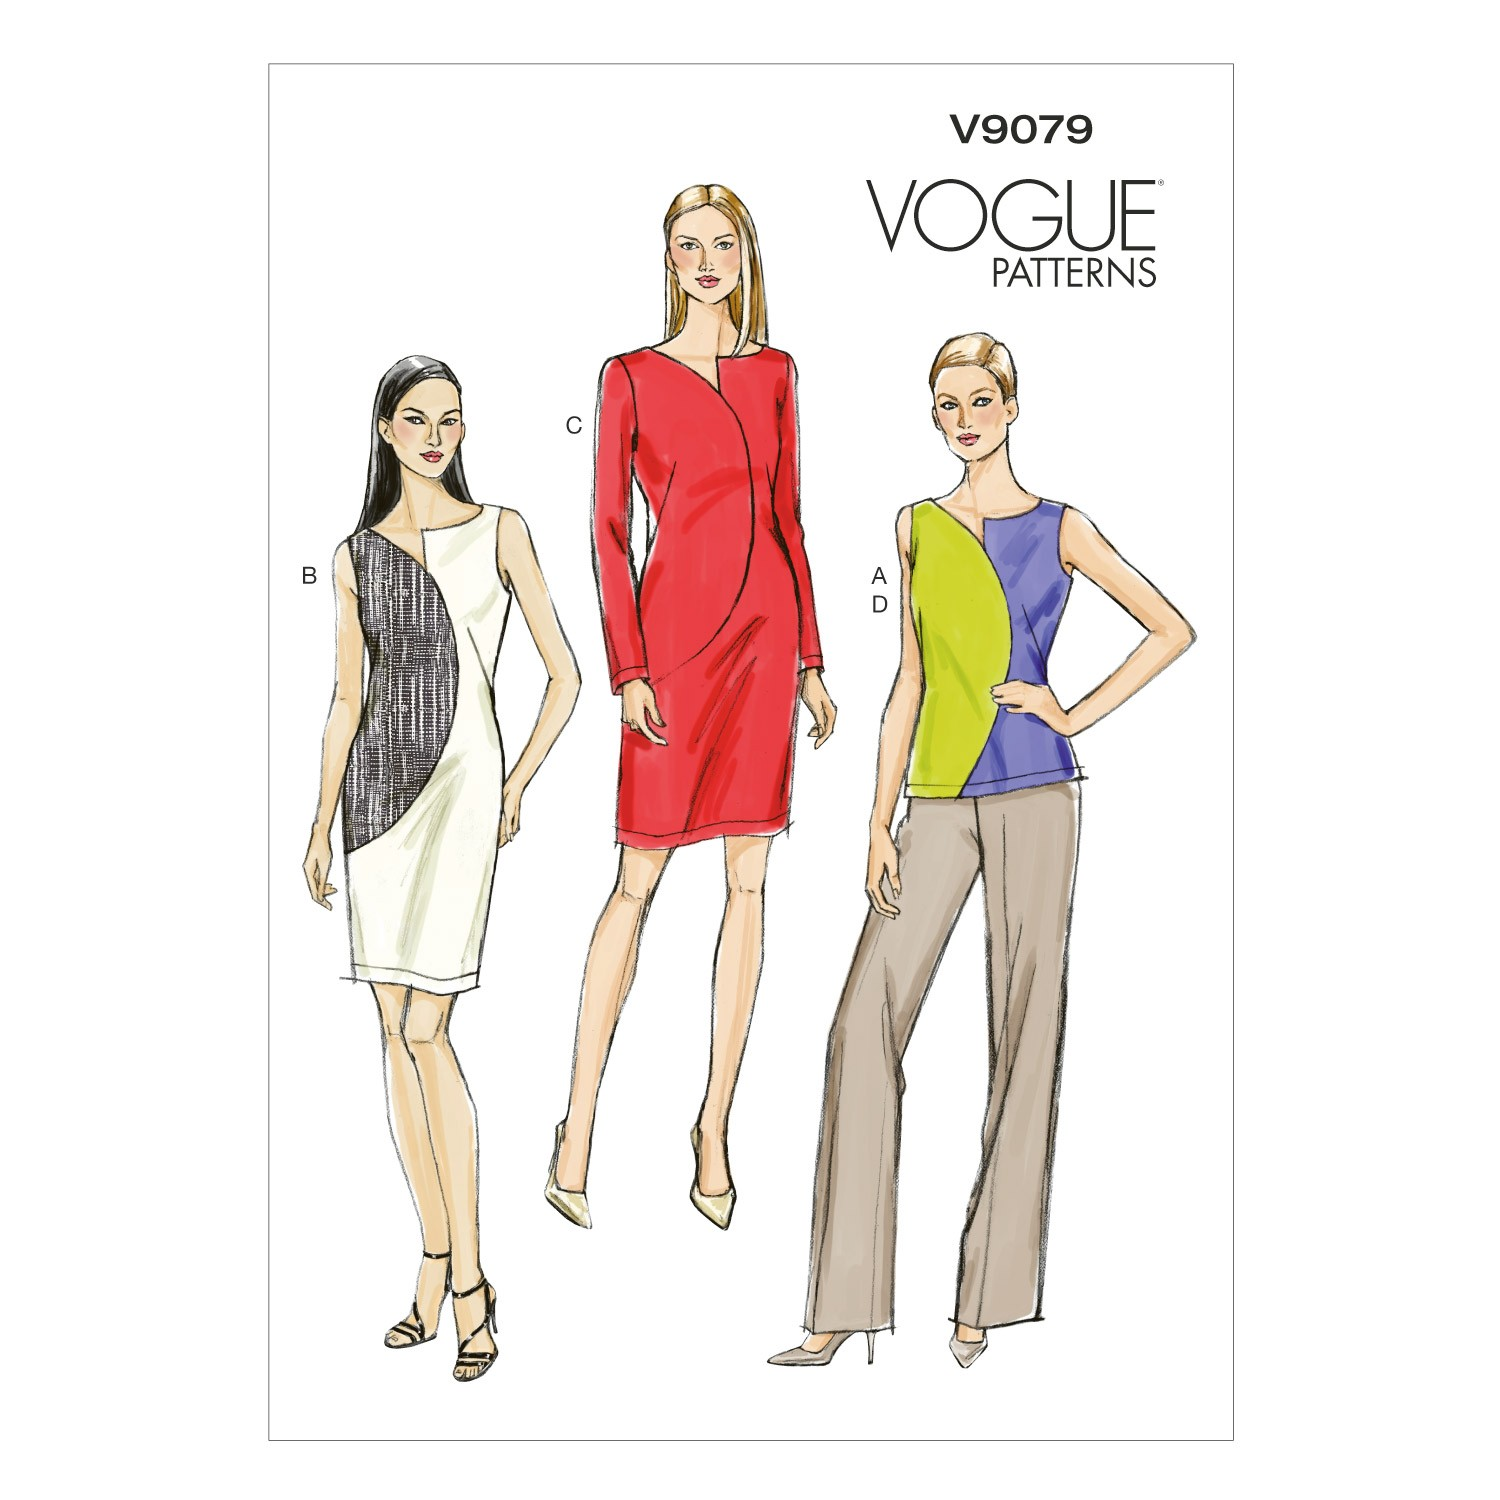 Vogue Sewing Pattern V9079 Women's Top Dresses And Trousers